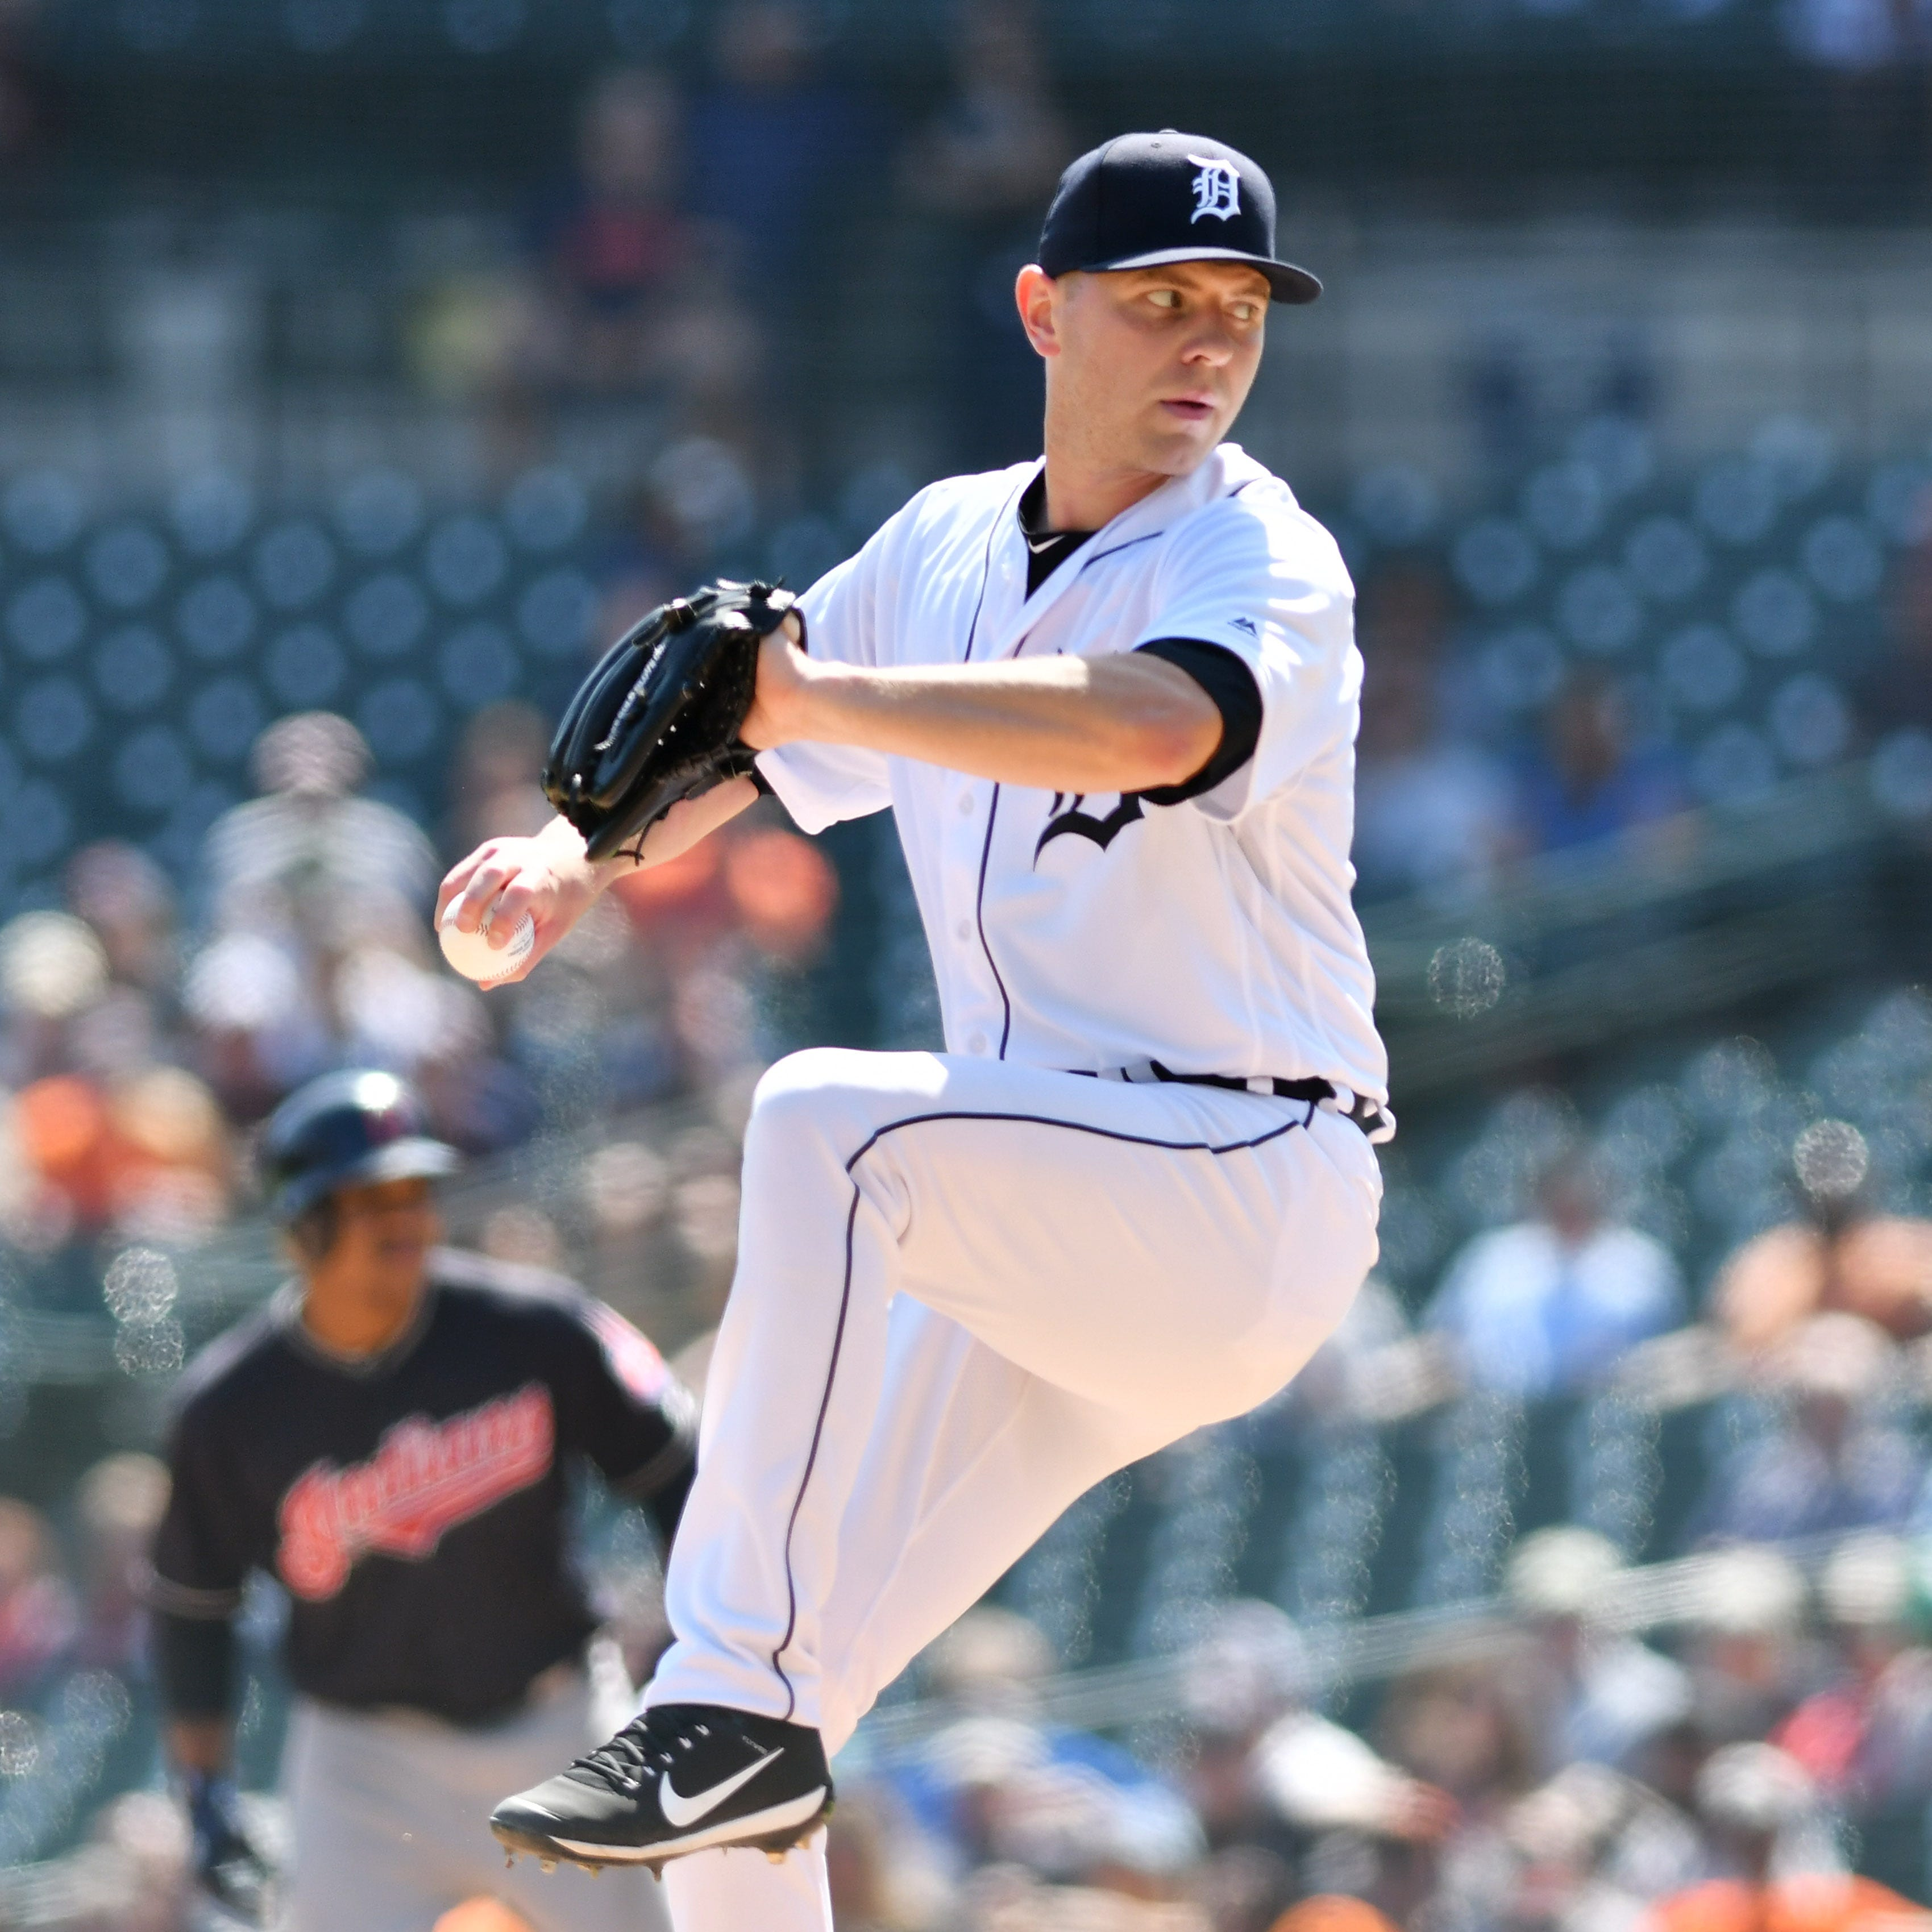 Tigers place Artie Lewicki on disabled list, call up Zac Reininger